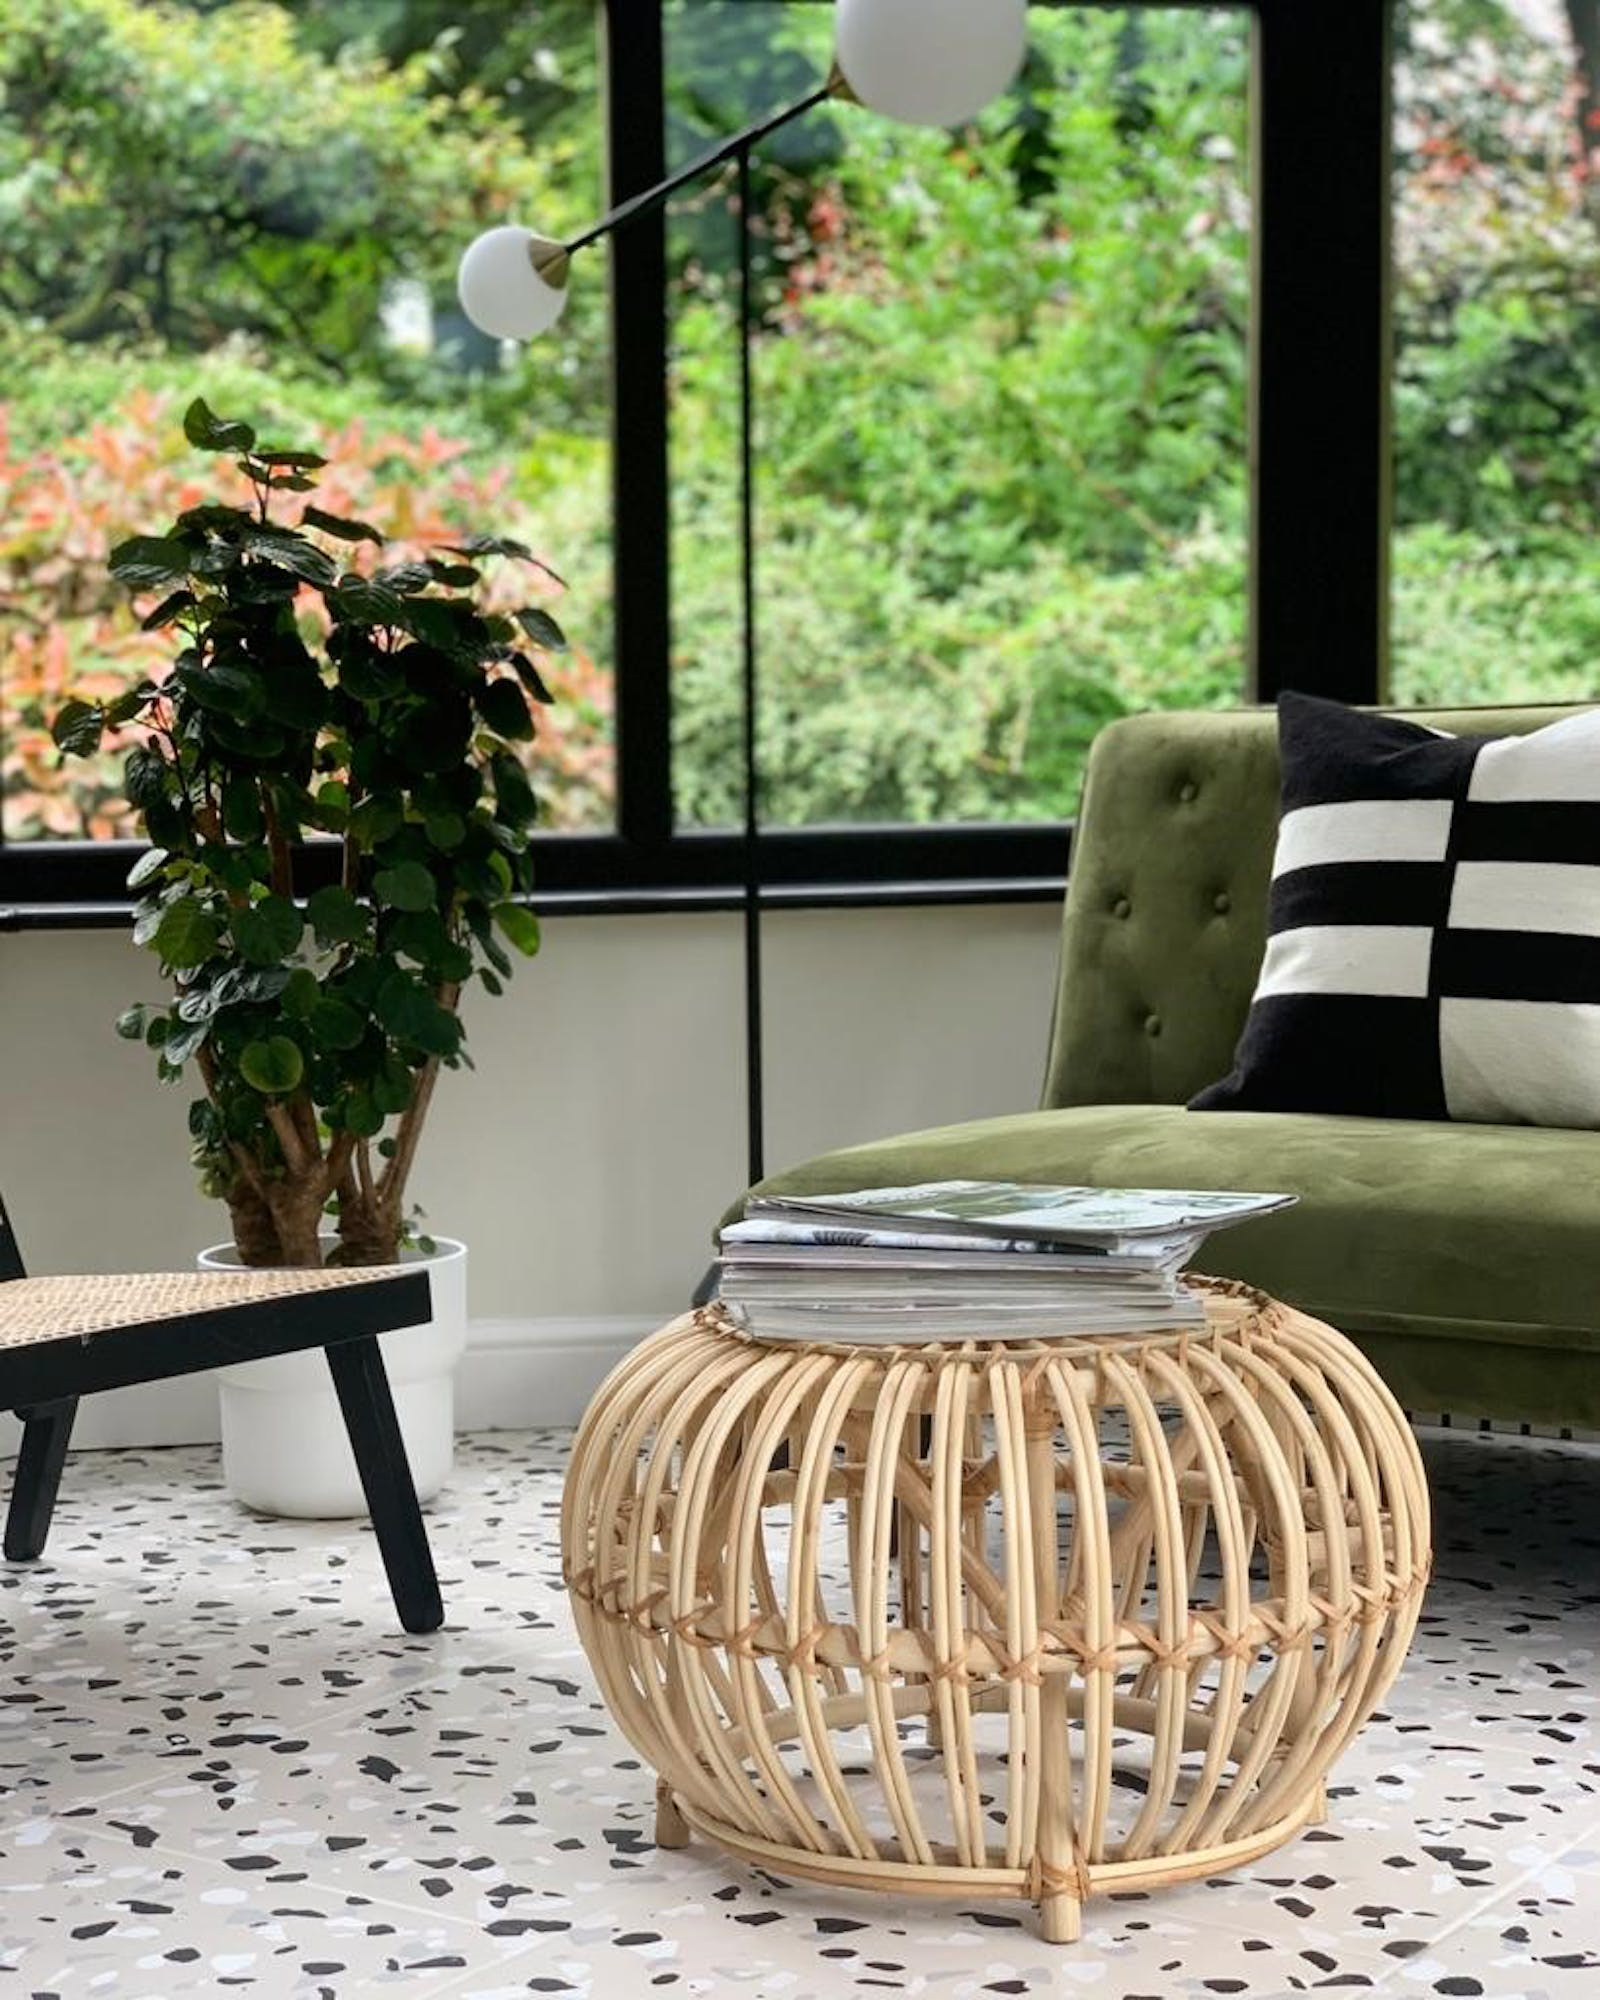 Green velvet sofa with a wooden rattan coffee table dressed in a stack of magazines